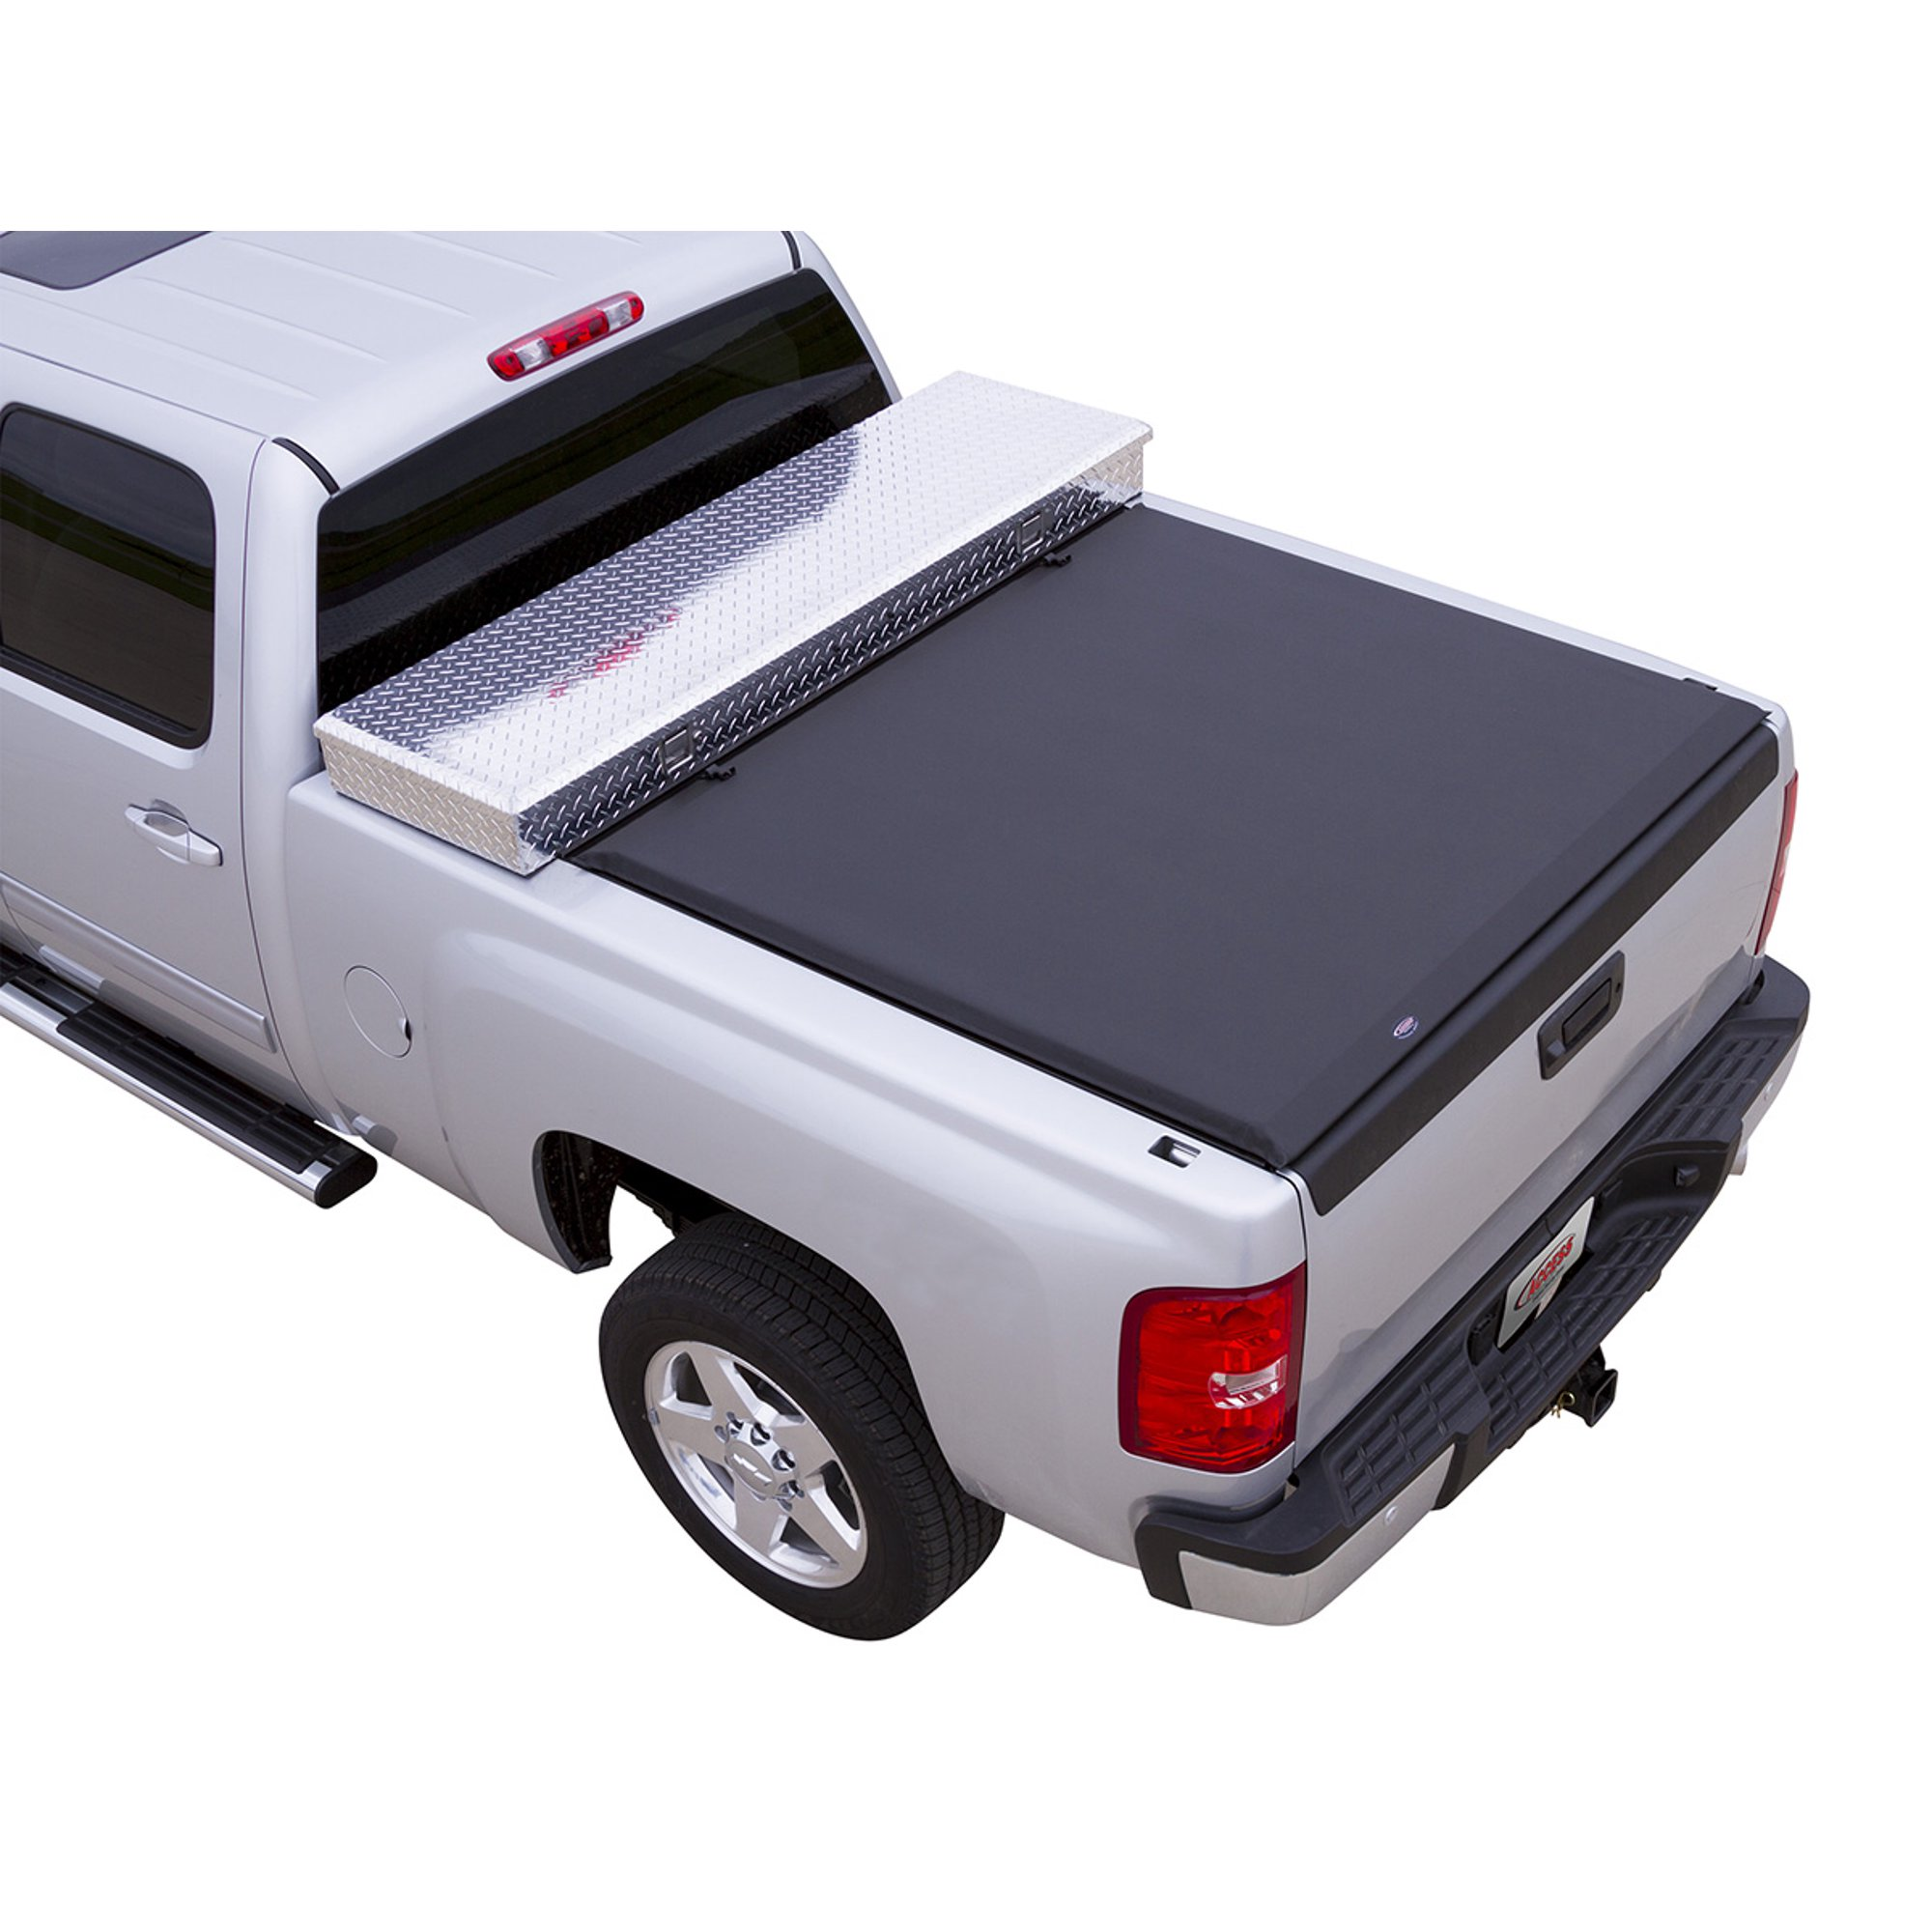 Aci Agricover Access Cover 61279 Tonneau Cover Toolbox R Soft